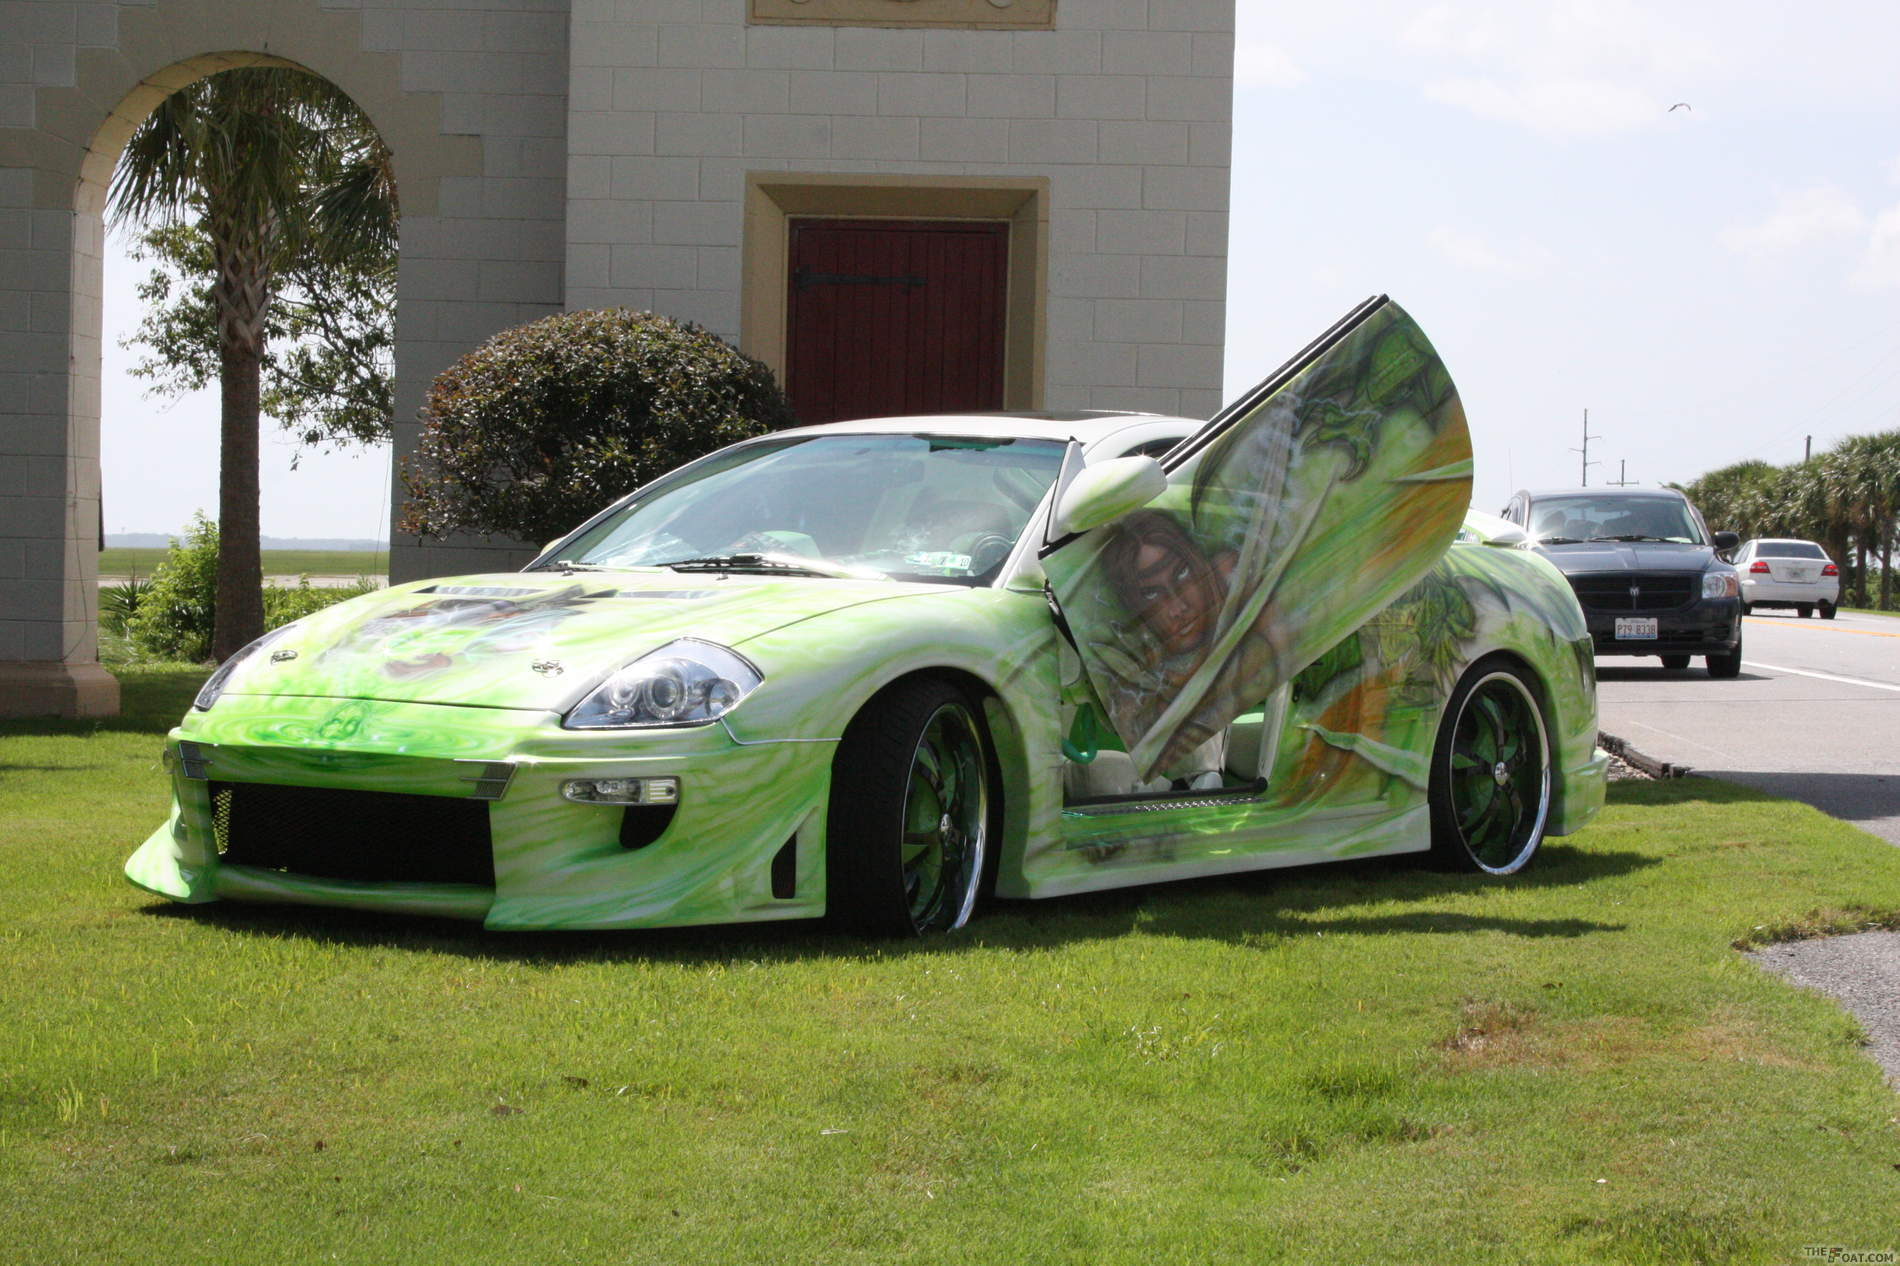 2000 mitsubishi eclipse dragon slayer